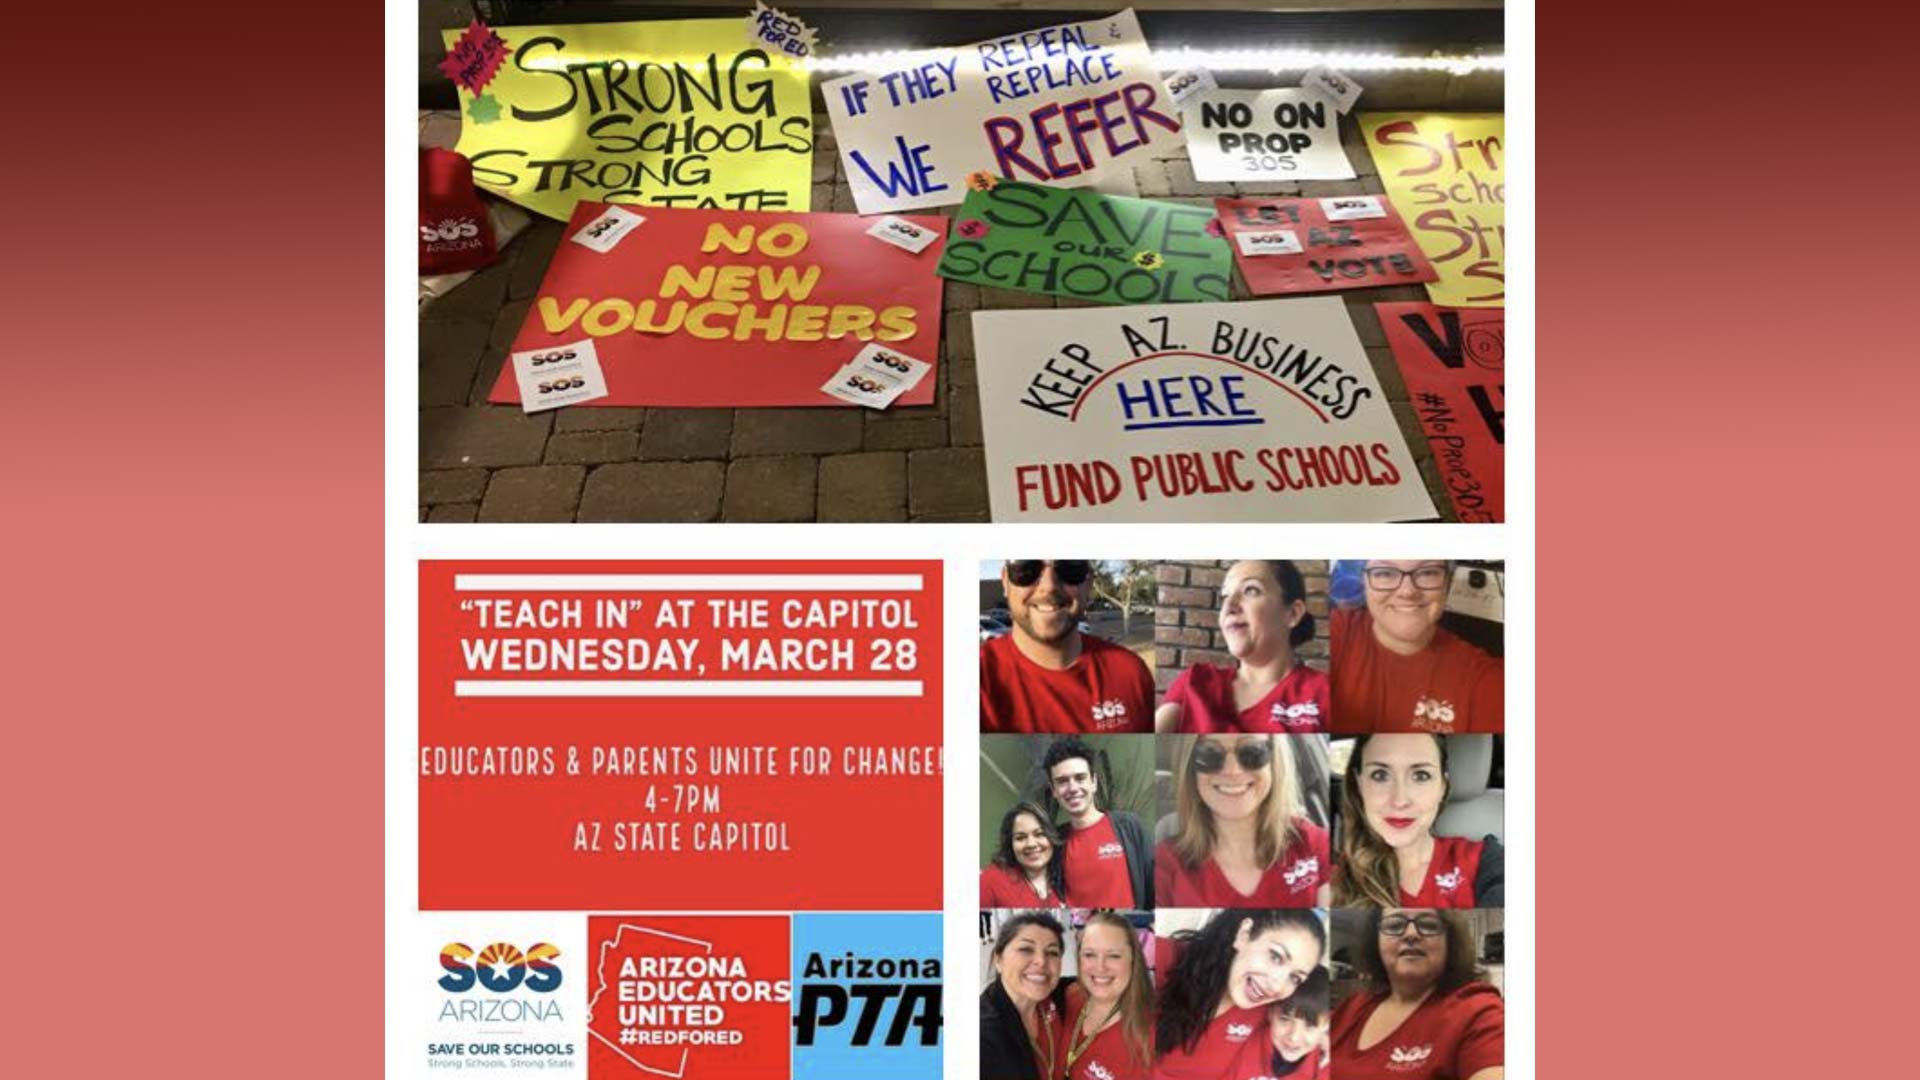 Organizations and advocates posted images on social media in preparation for events planned for Wednesday, March 28, 2018 demanding higher teacher pay. Groups included Save Our Schools and Arizona Educators United.